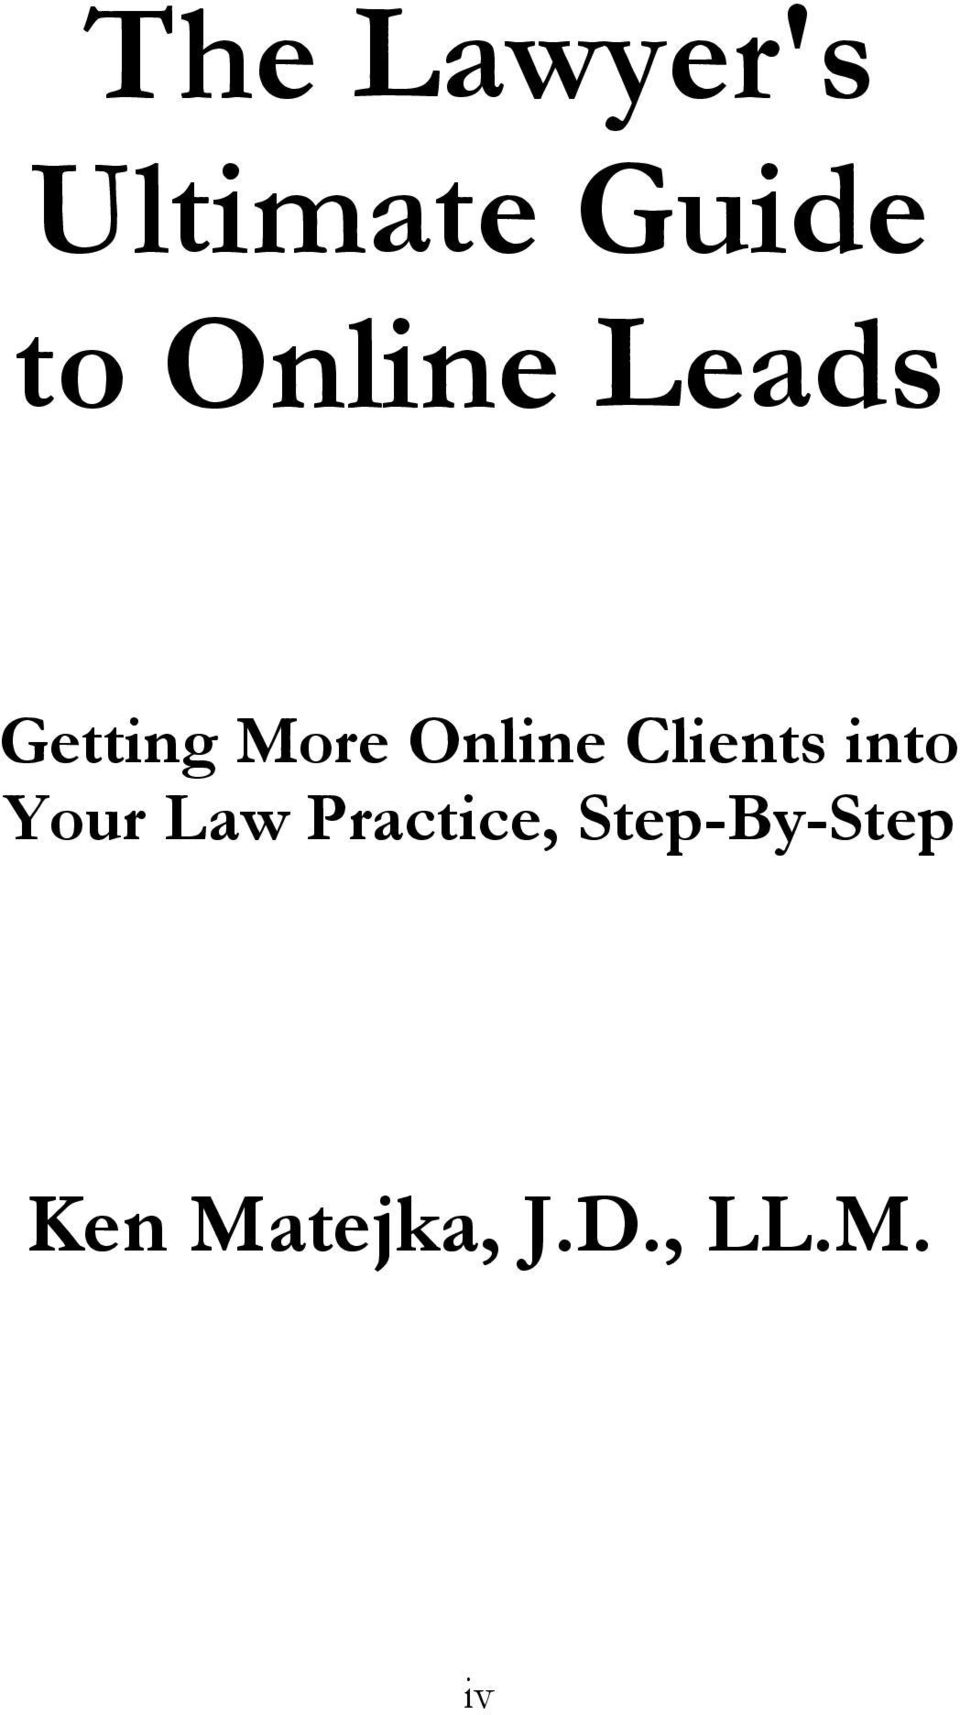 Clients into Your Law Practice,